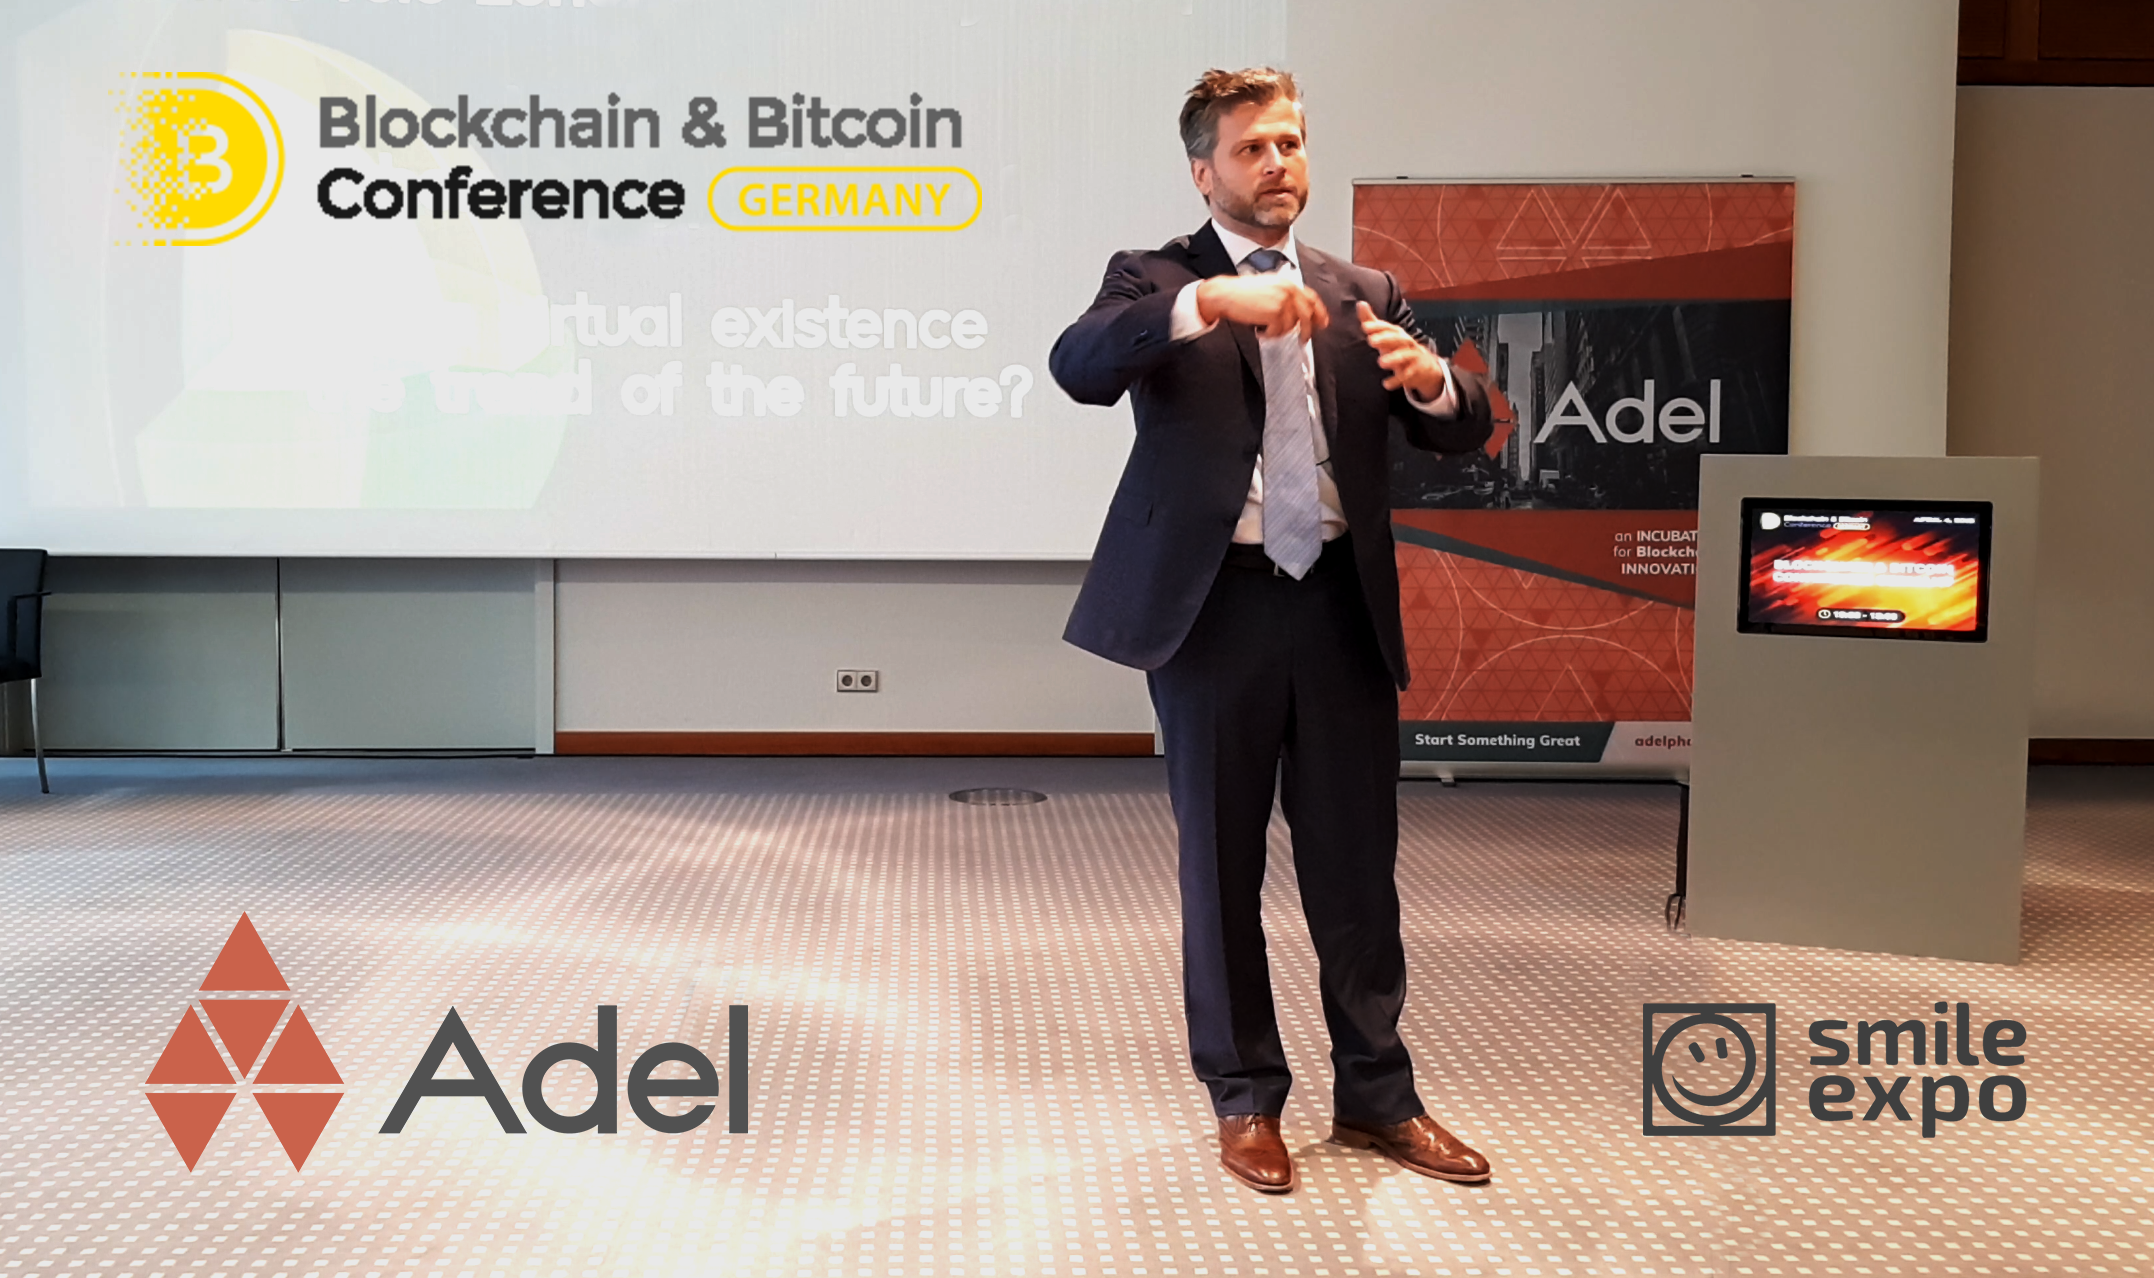 Adel ▲ Conference ▲ Borderless Citizens™ in the 21st Century ▲ Berlin